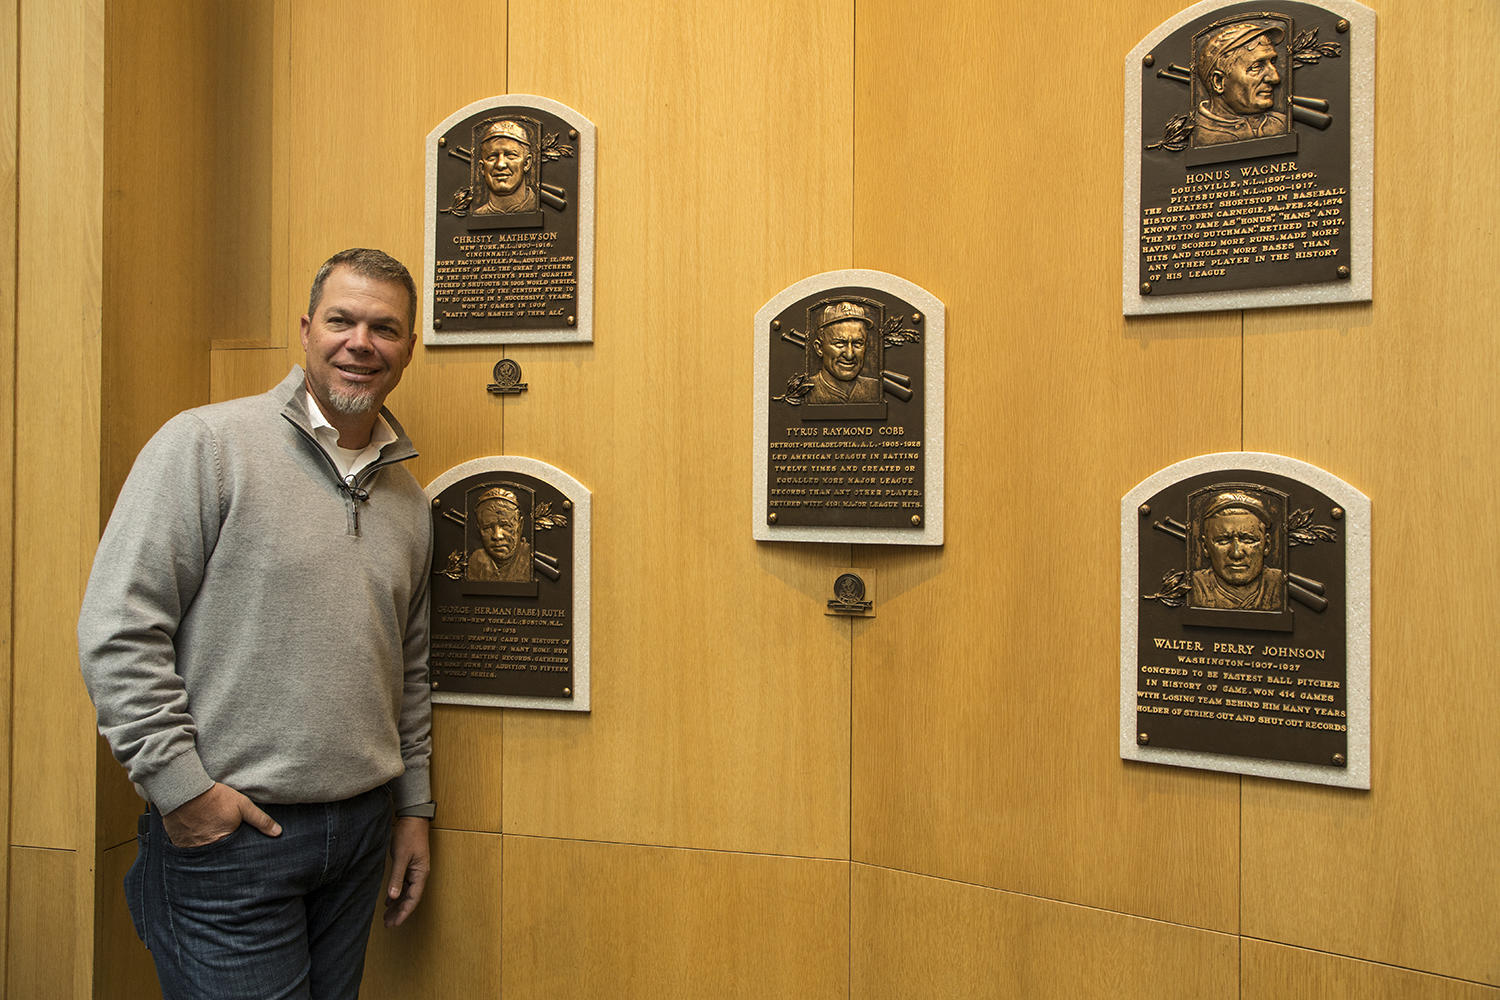 Chipper Jones poses with the bronze plaques representing the Hall of Fame's Class of 1936 during his trip to Cooperstown. (Milo Stewart Jr./National Baseball Hall of Fame and Museum)